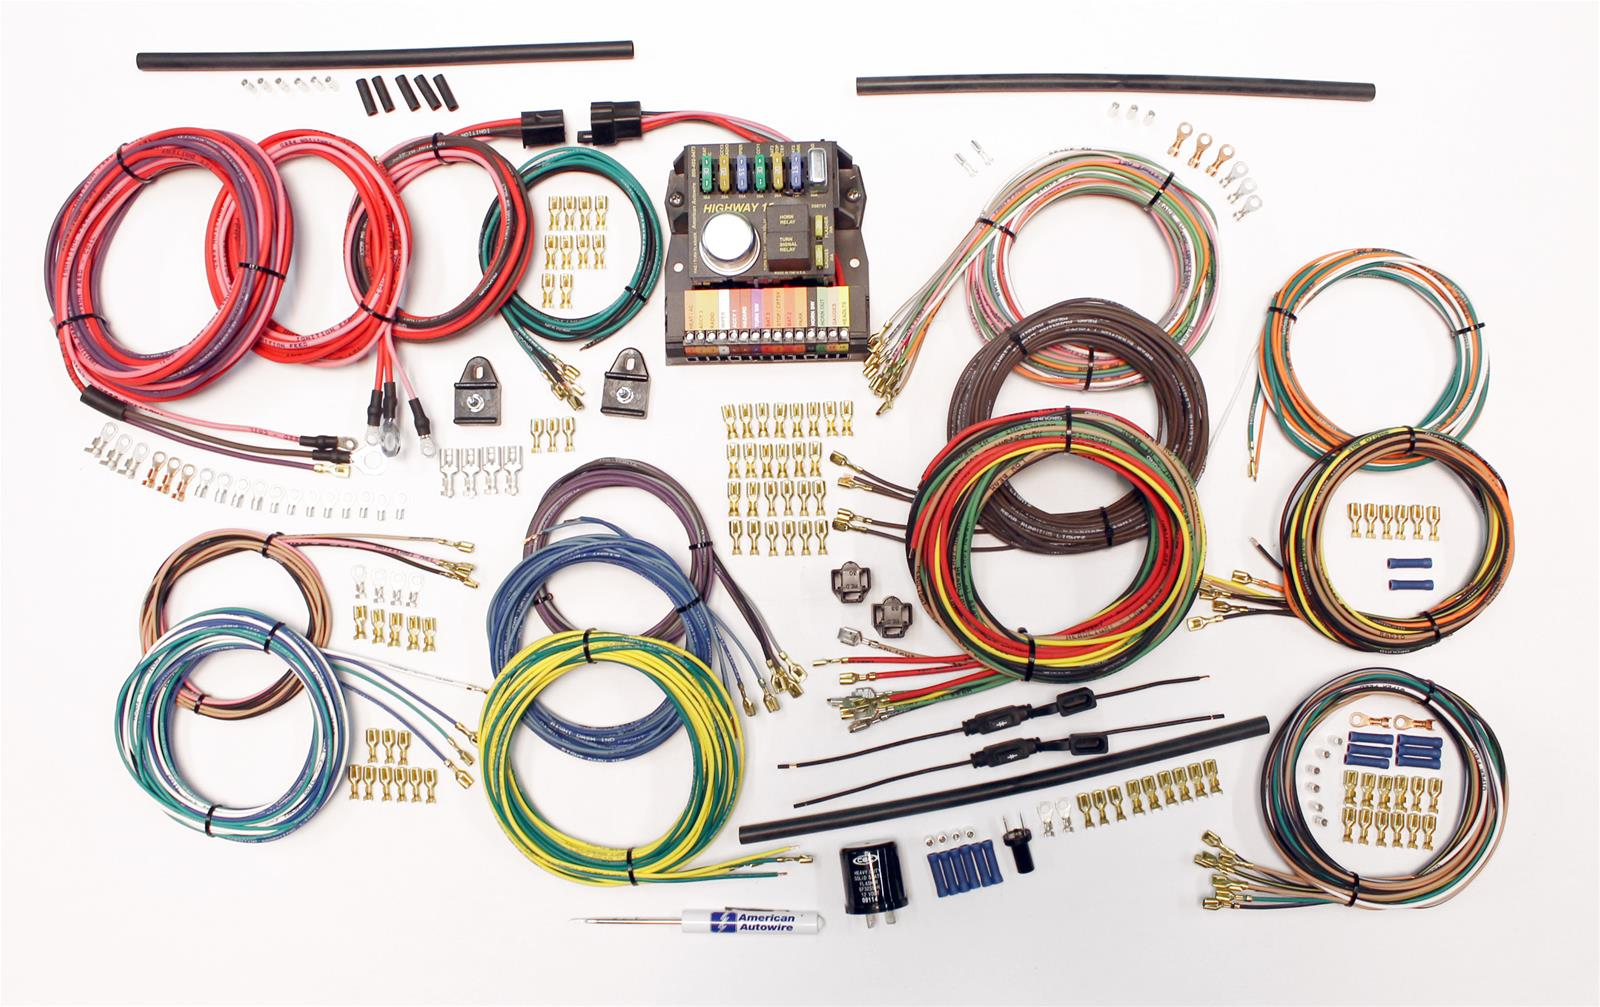 hight resolution of vw bug wiring harness kit enthusiast wiring diagrams u2022 rh rasalibre co 1969 vw bug wiring